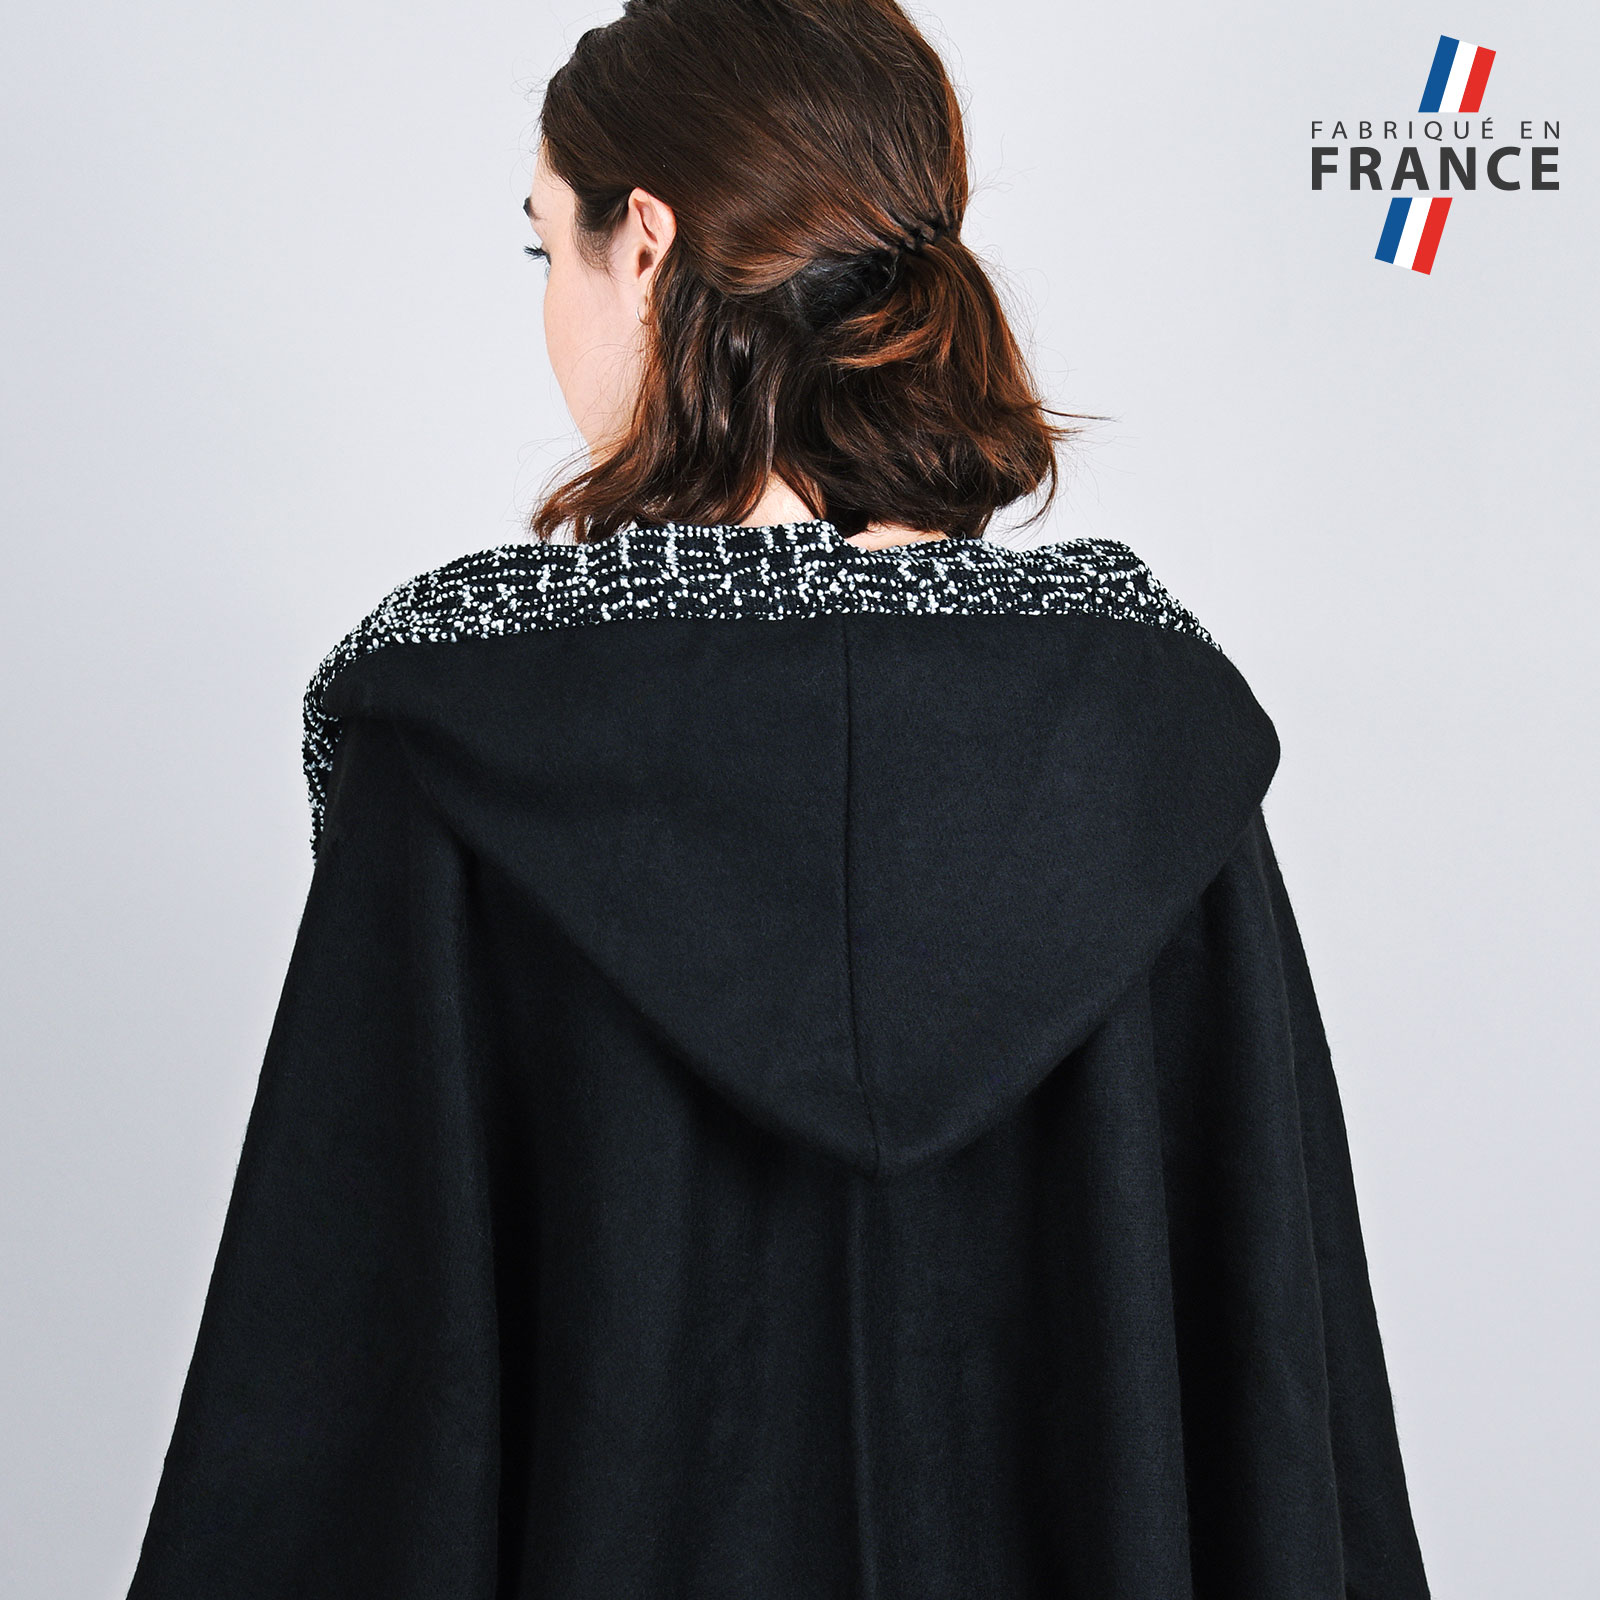 AT-03248-VF16-3-LB_FR-poncho-a-capuche-fabrication-francaise